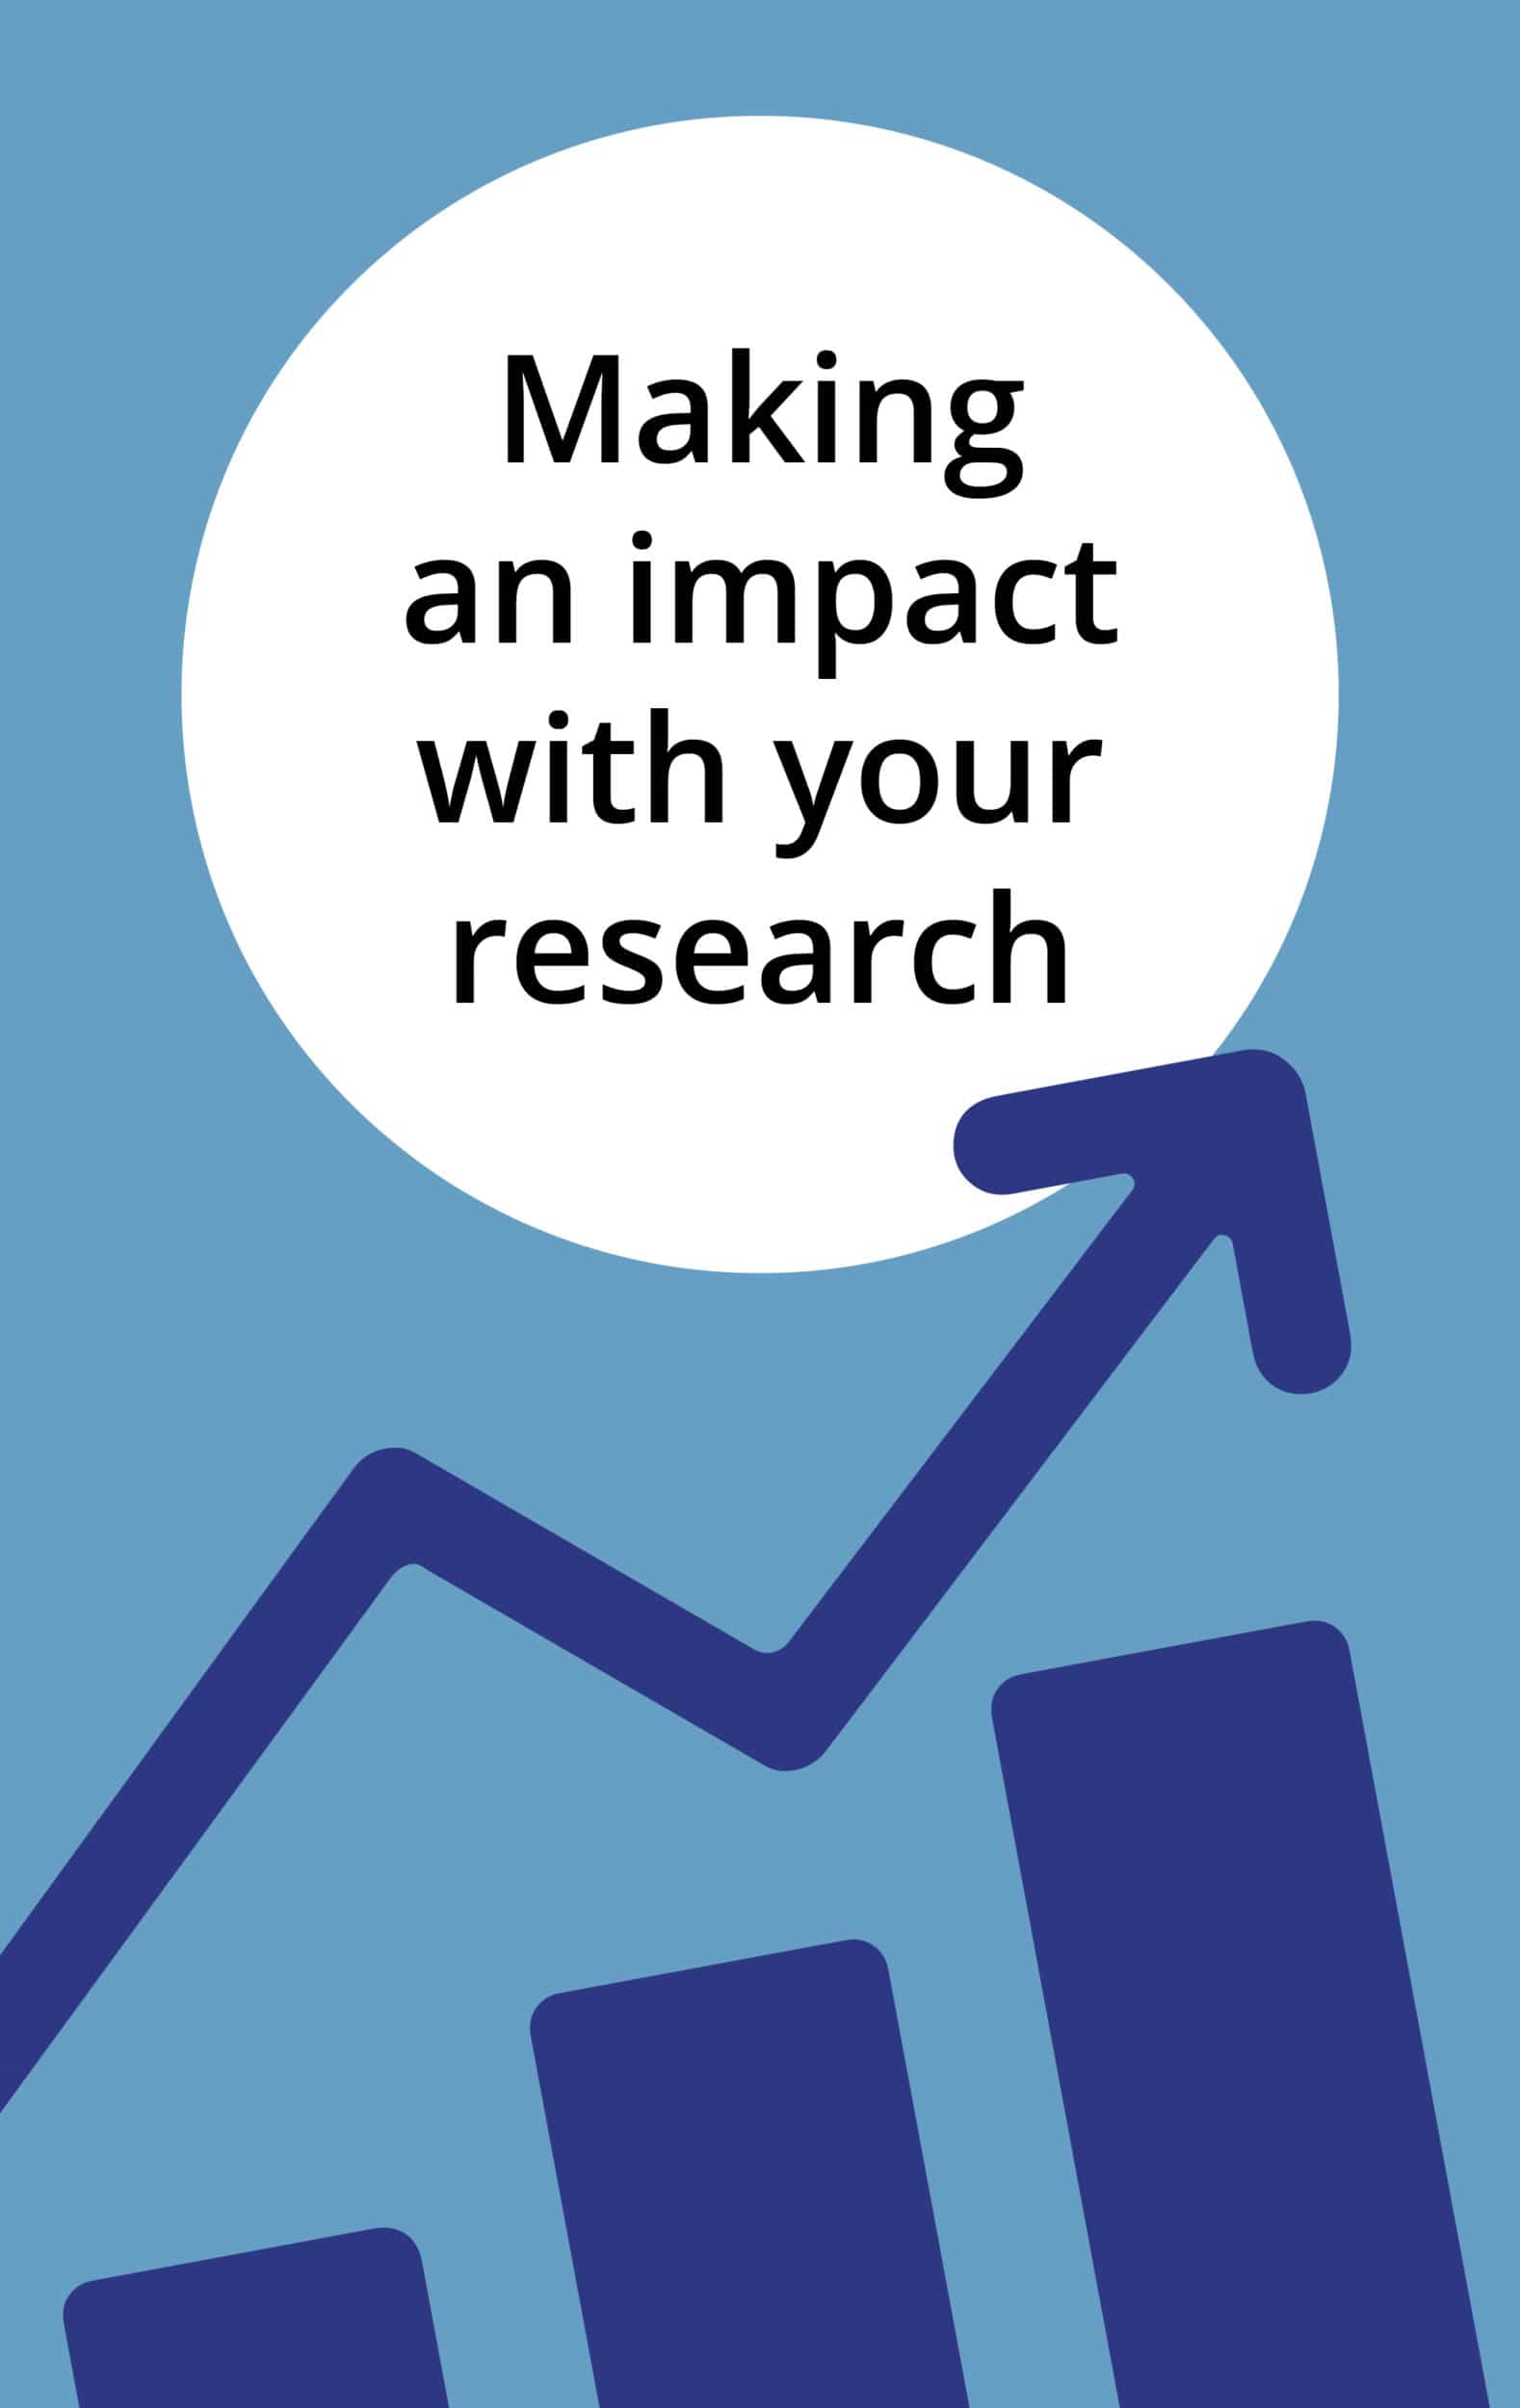 Banner - Making an impact with your research